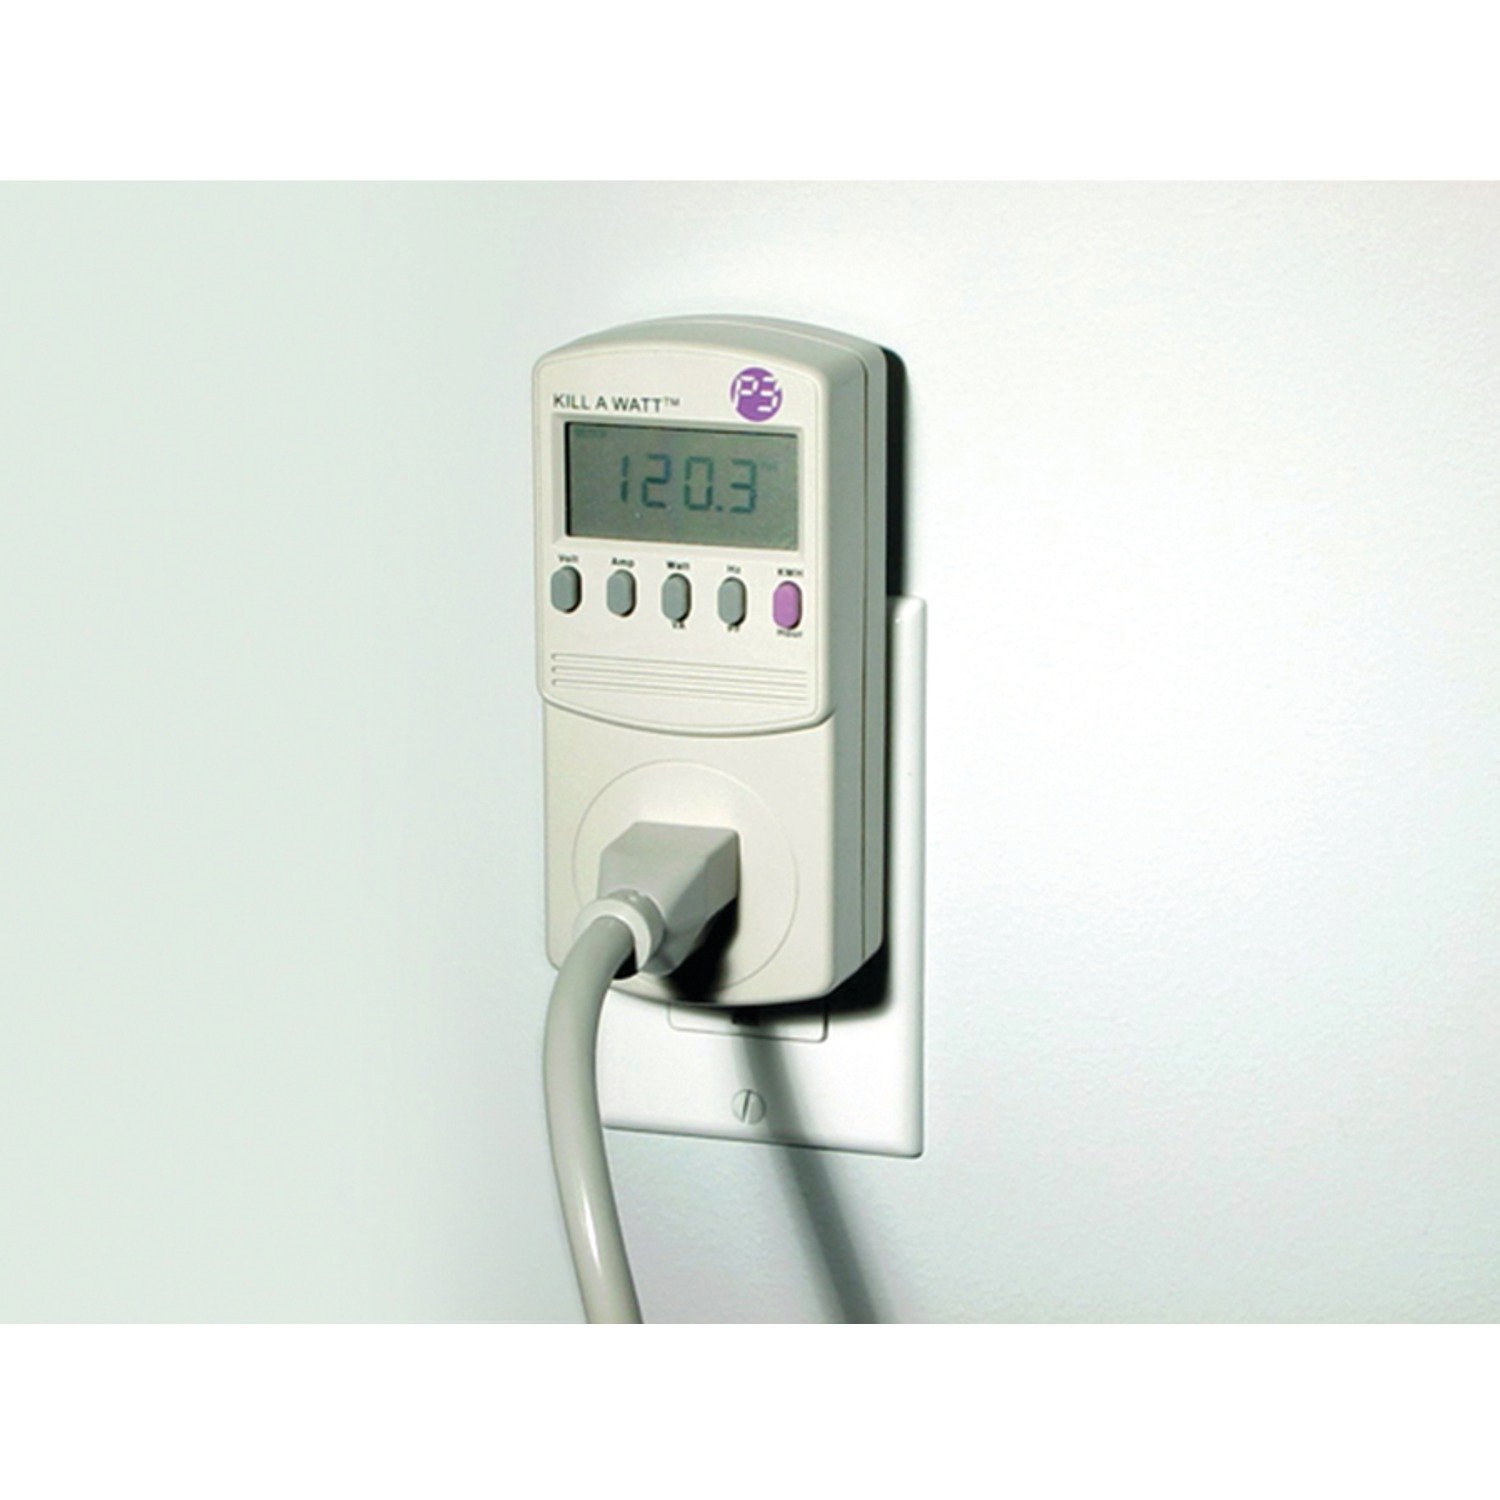 P3 P3IP4400, Kill A Watt Electricity Usage Monitor